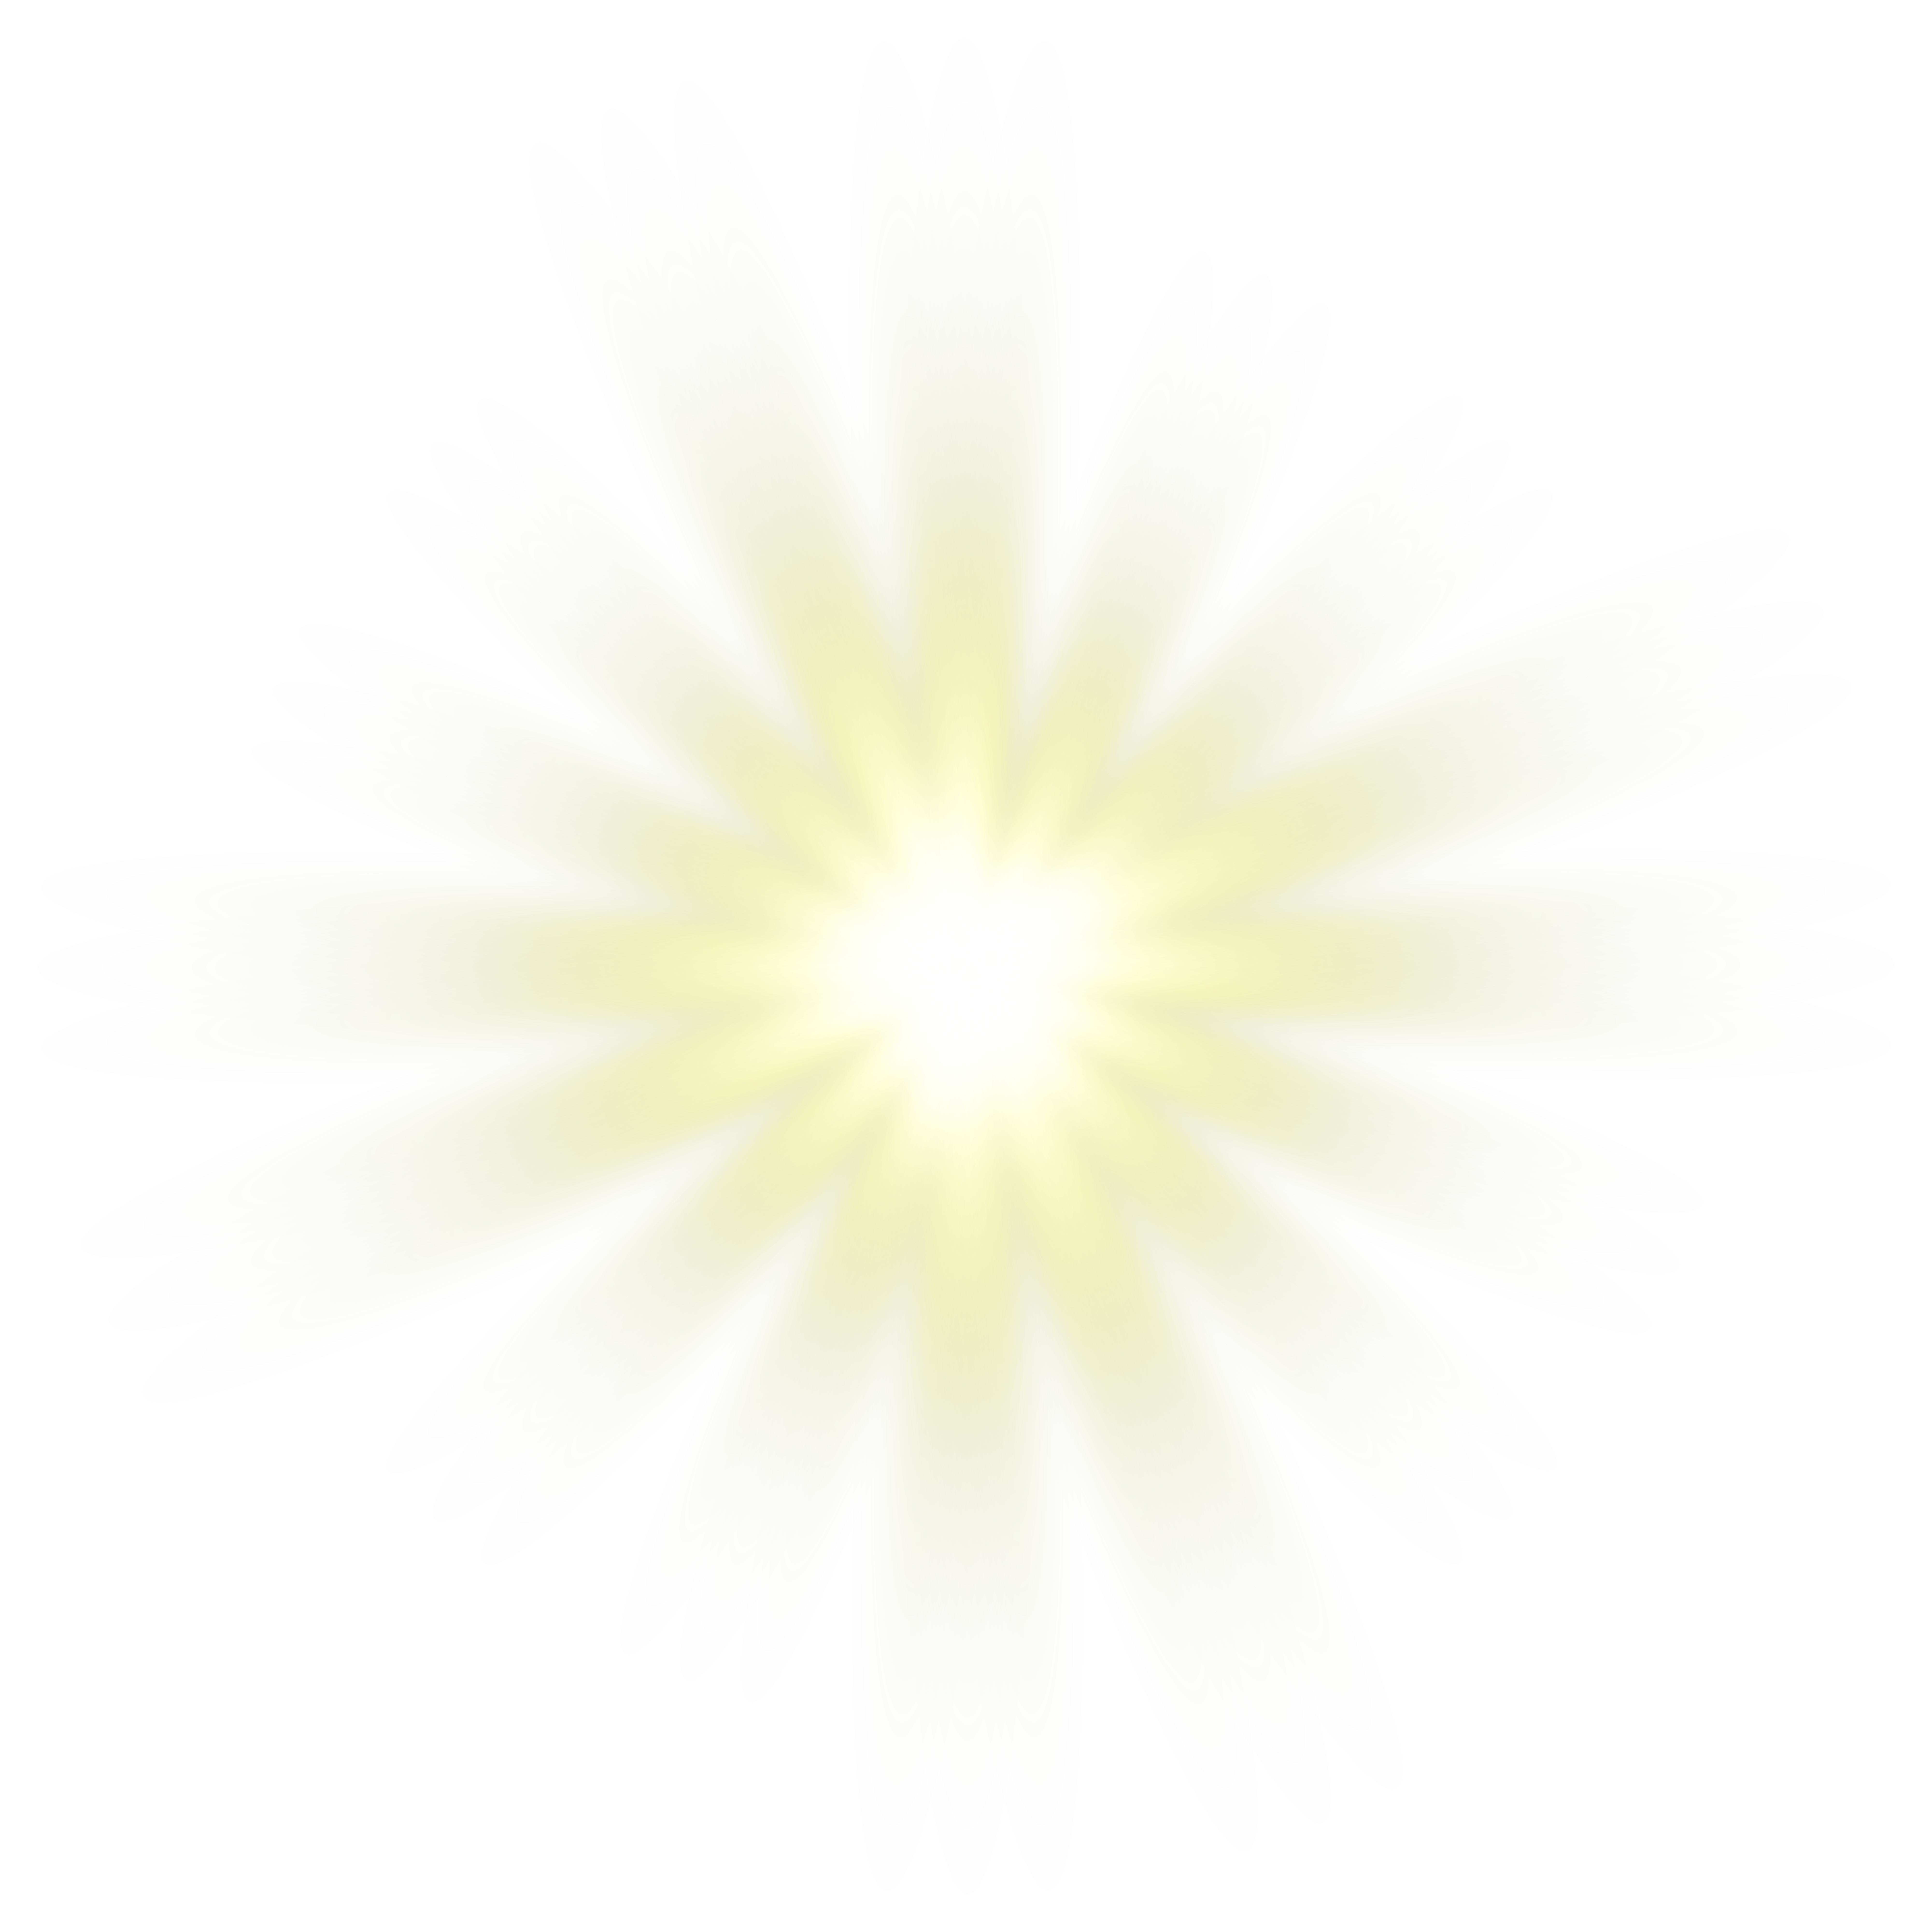 Light effect transparent clip. Png lens flare clipart transparent library